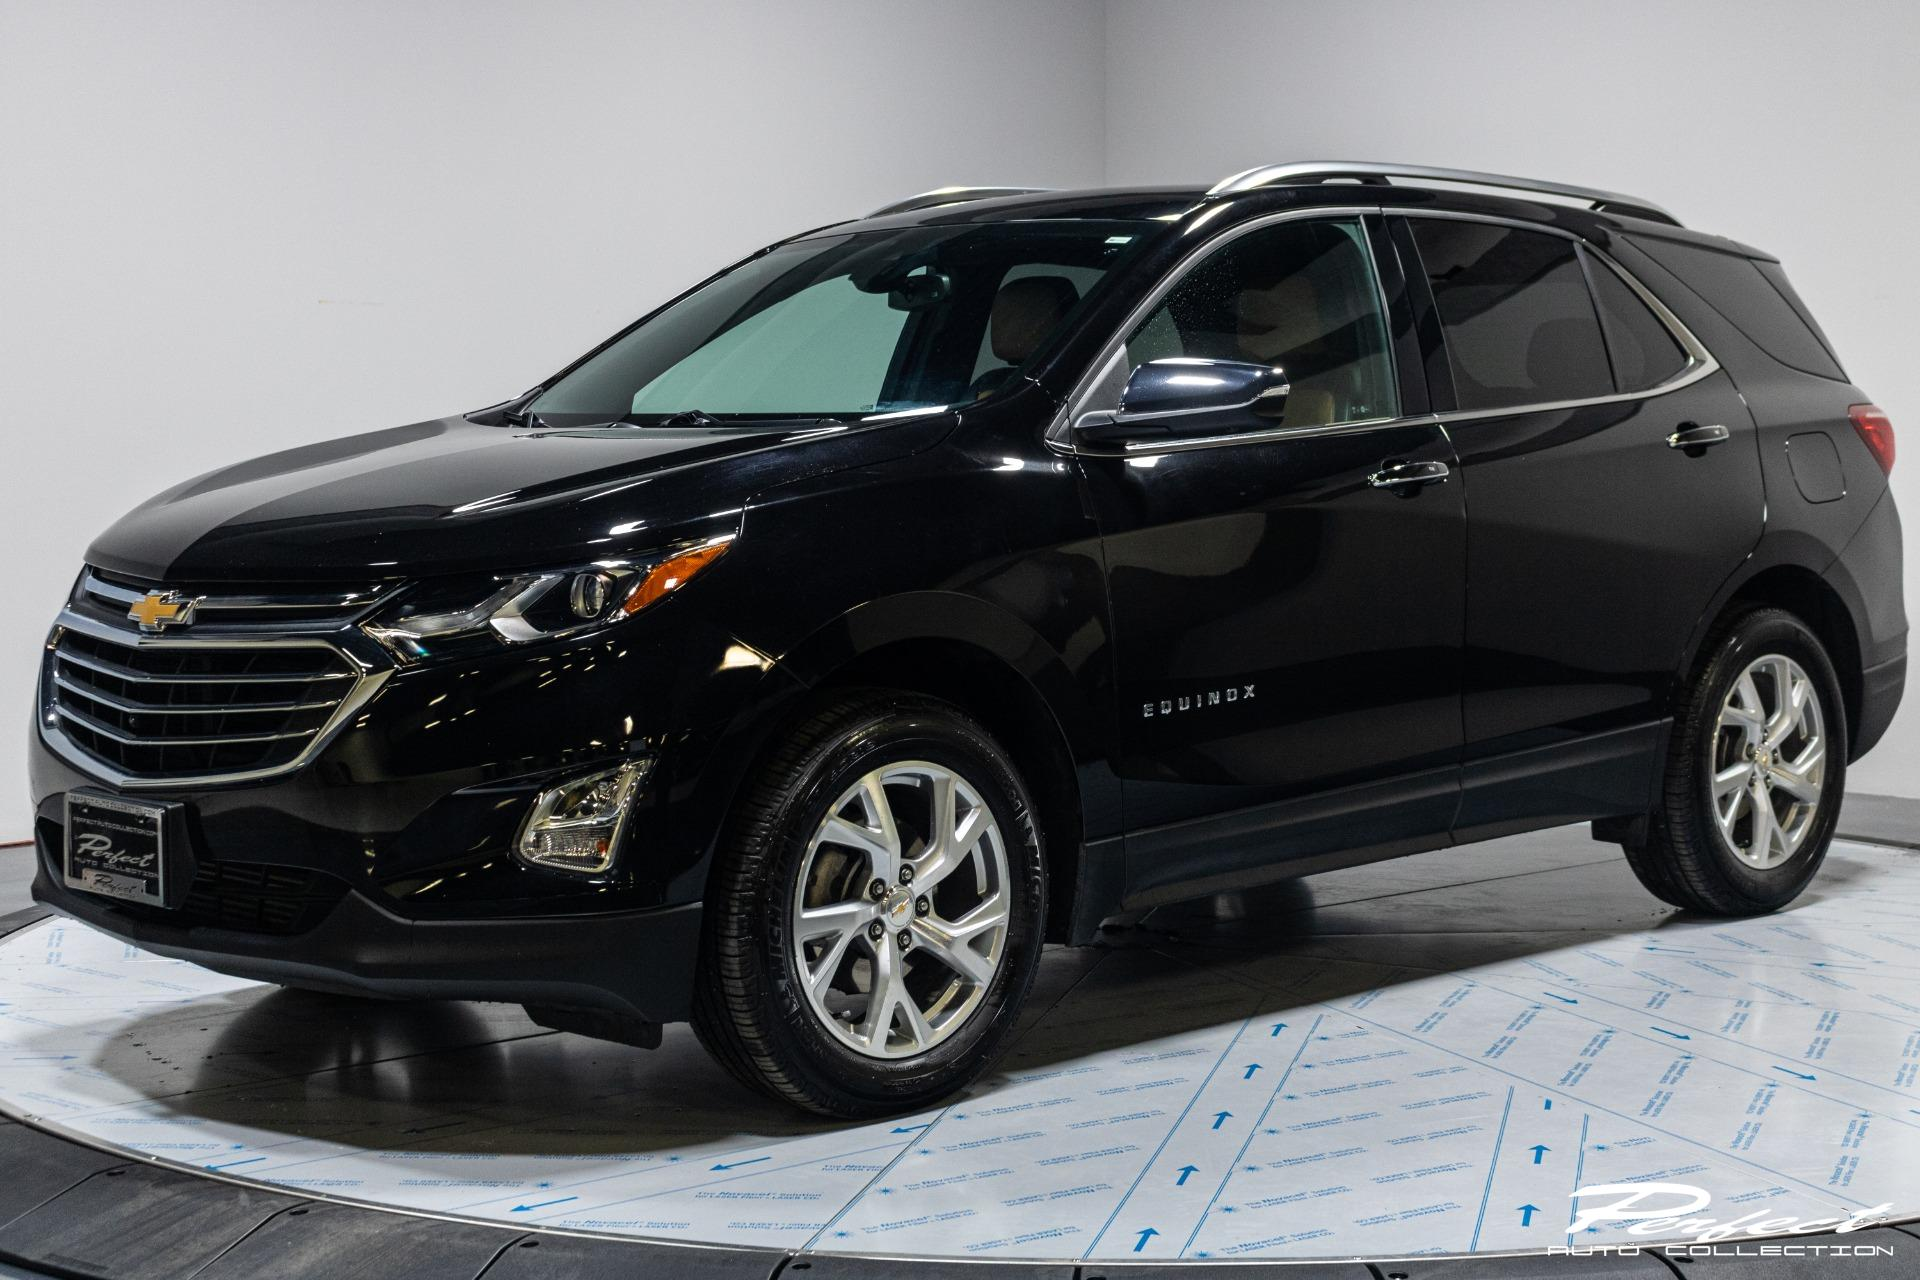 Used 2018 Chevrolet Equinox Premier for sale $19,493 at Perfect Auto Collection in Akron OH 44310 1